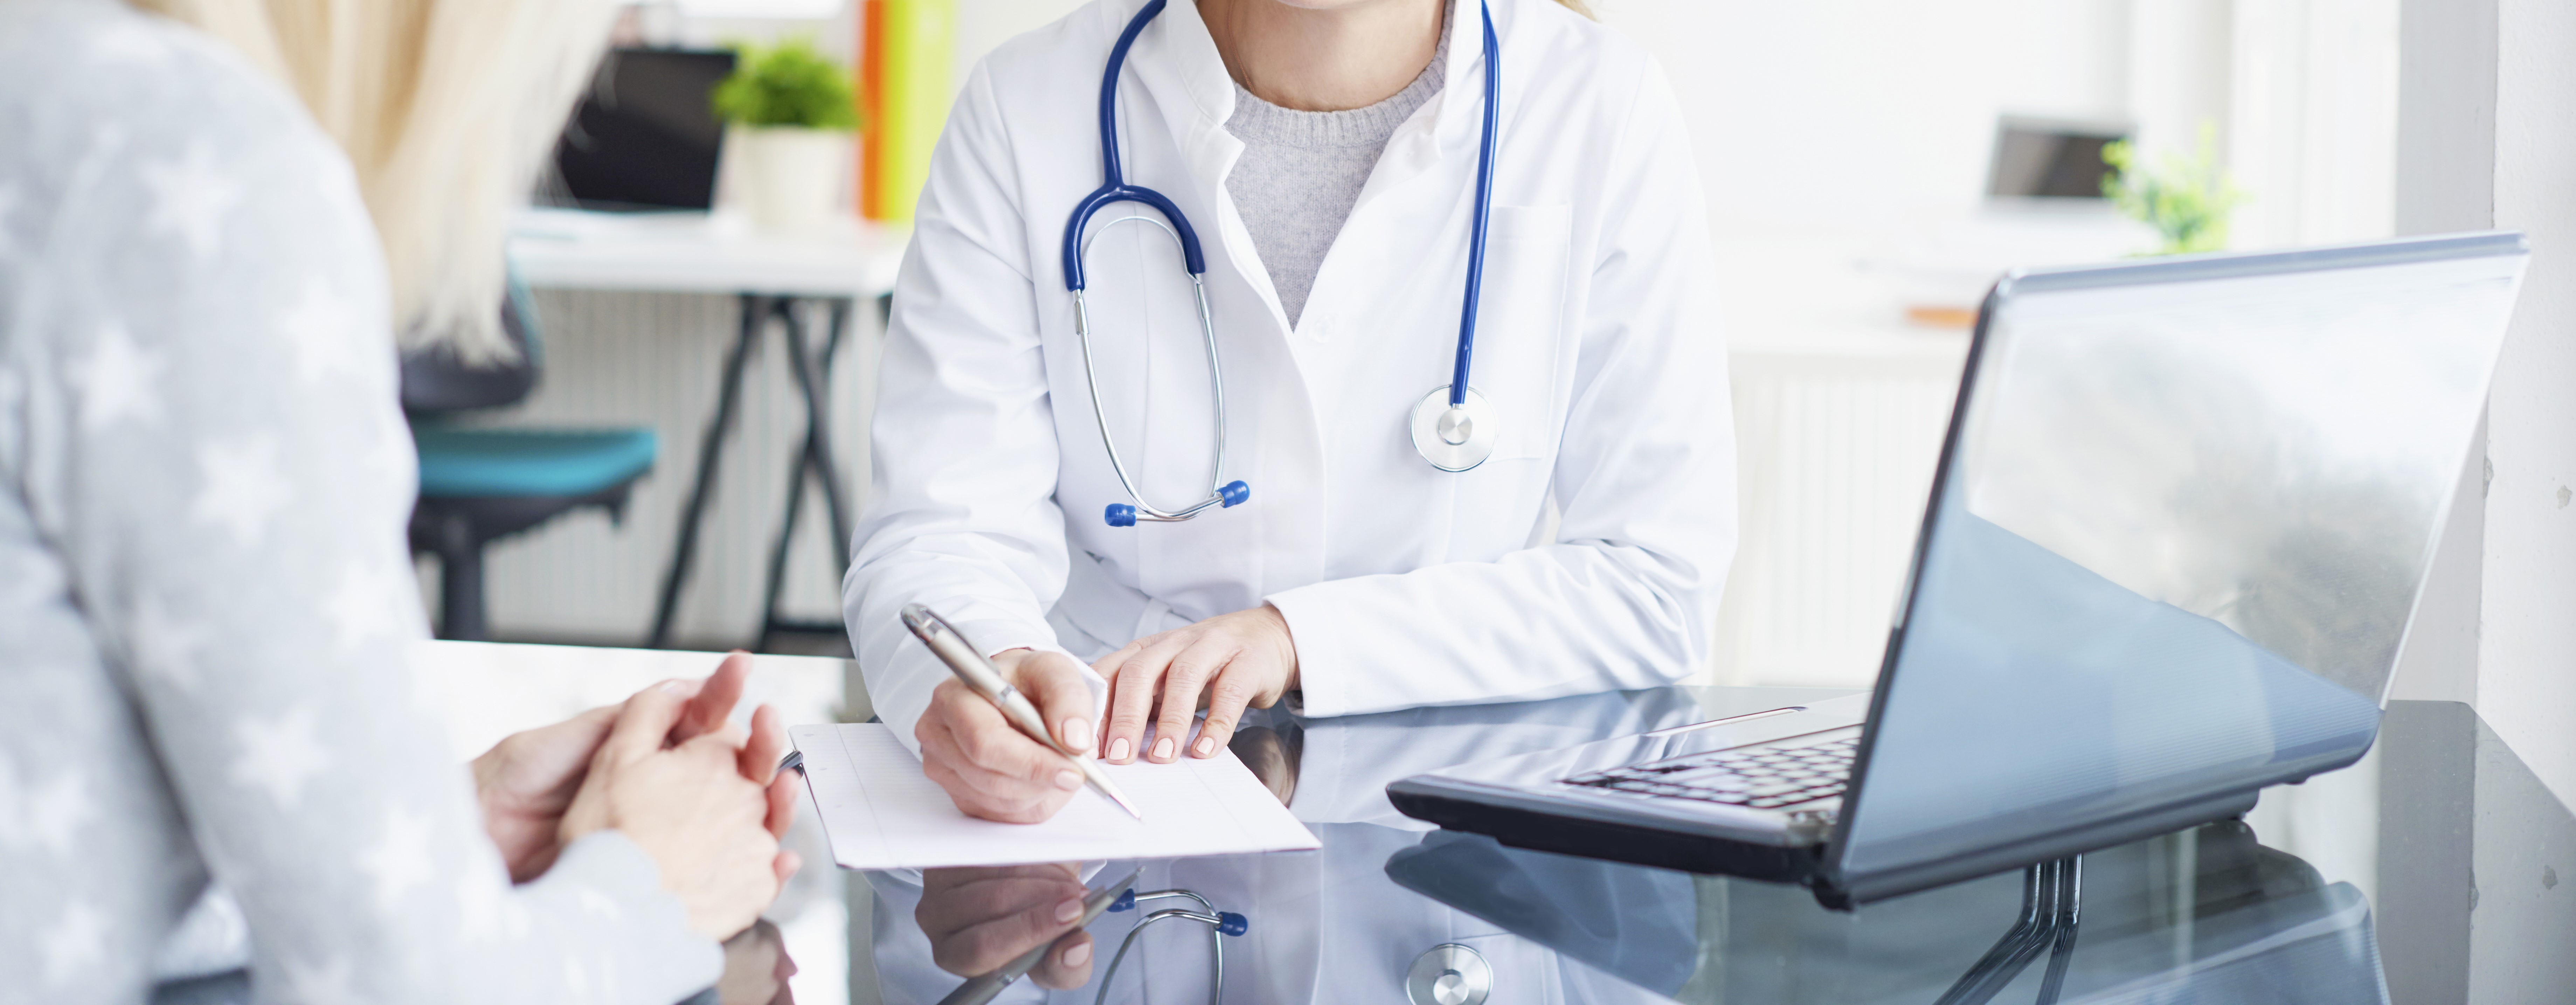 Shot of a middle aged female doctor sitting in front of laptop and consulting with her patient.